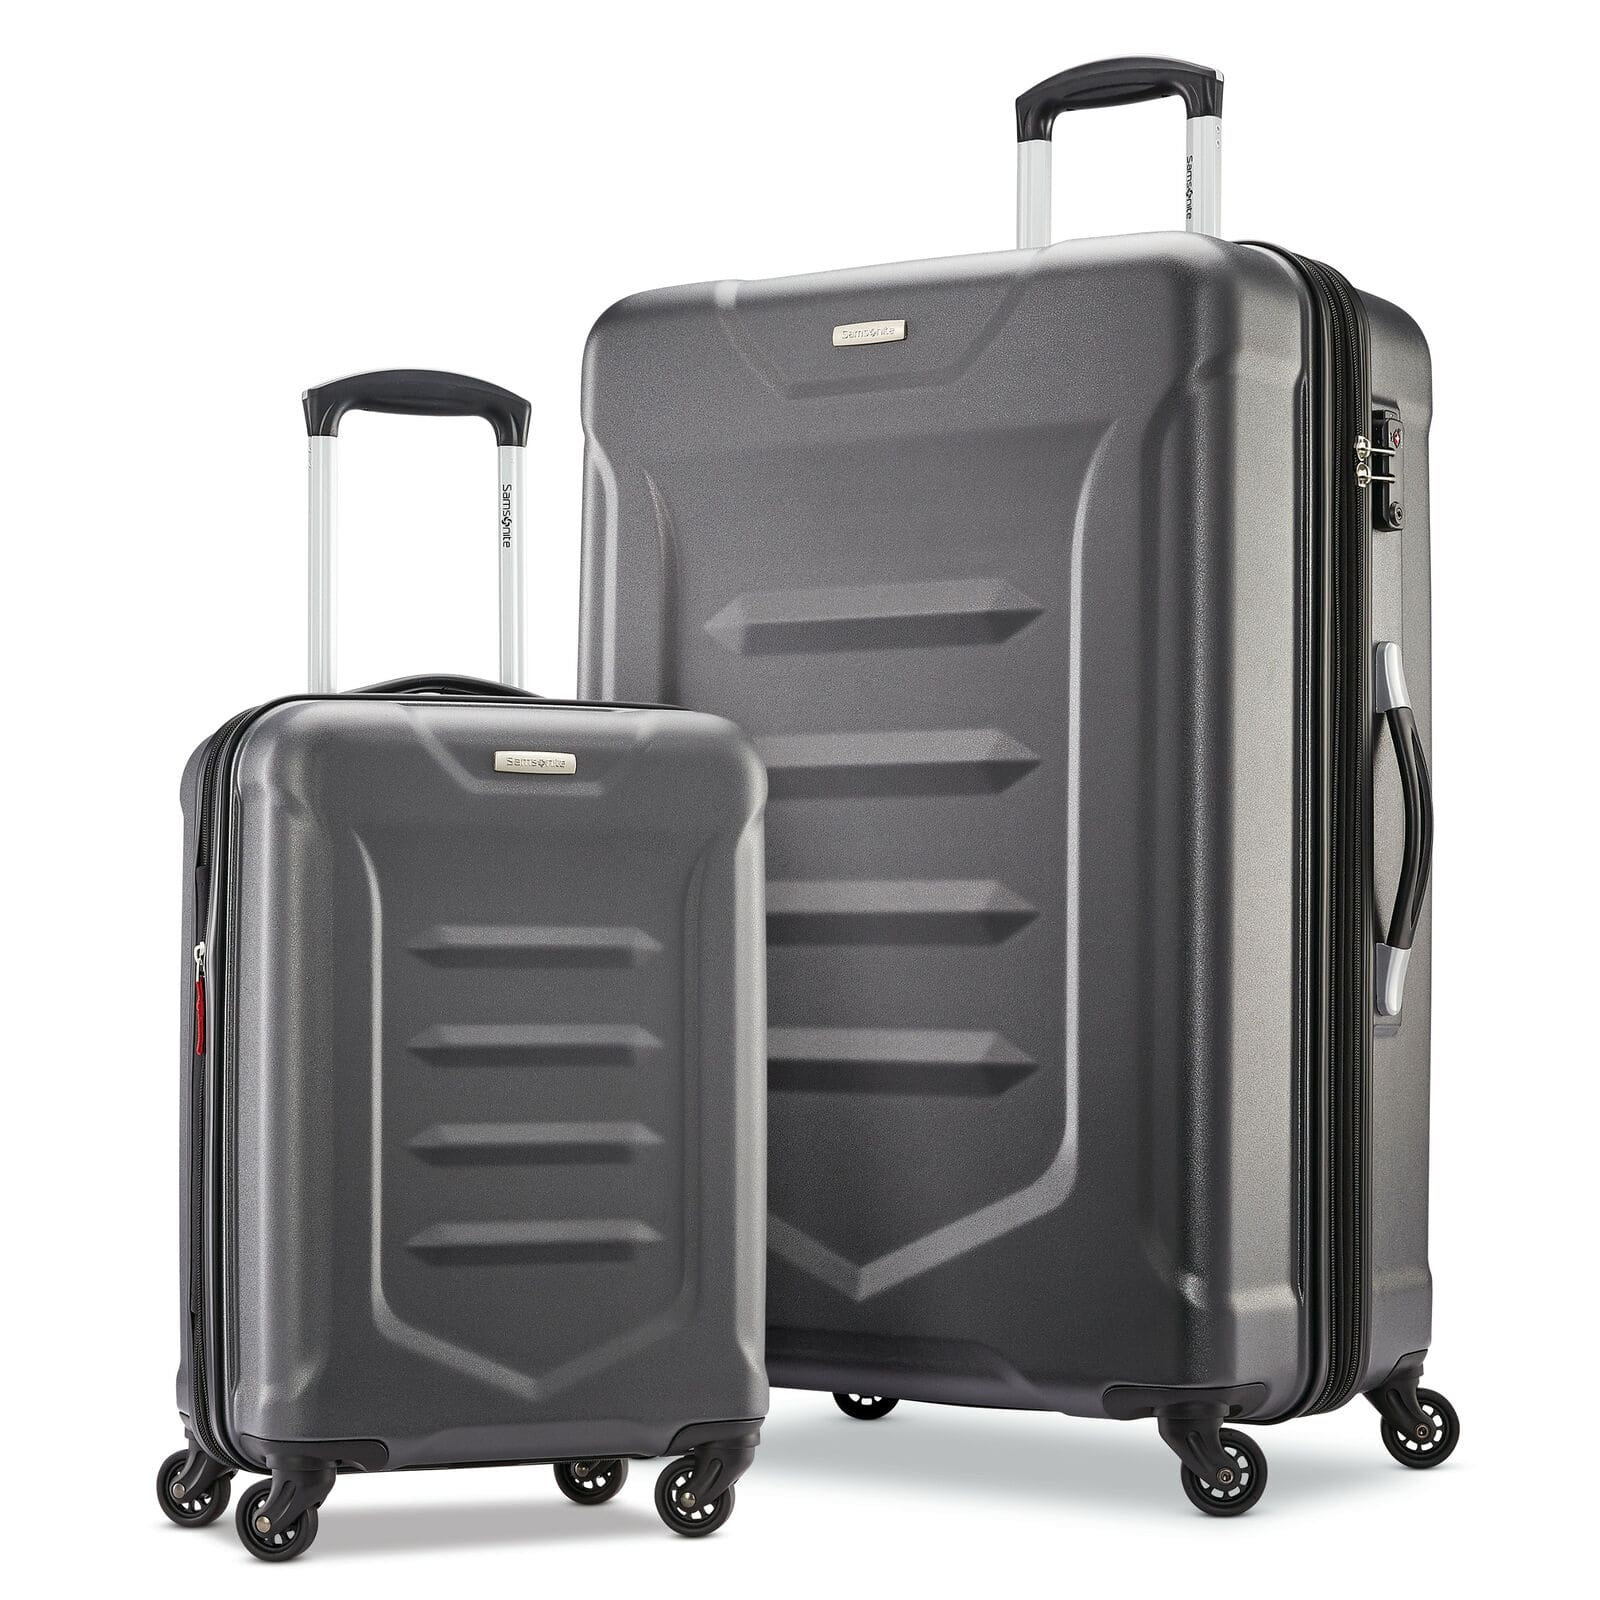 """2-Piece Samsonite Valor 2.0  Luggage Set (20"""" + 28"""", Charcoal or Teal) $104 + Free Shipping"""